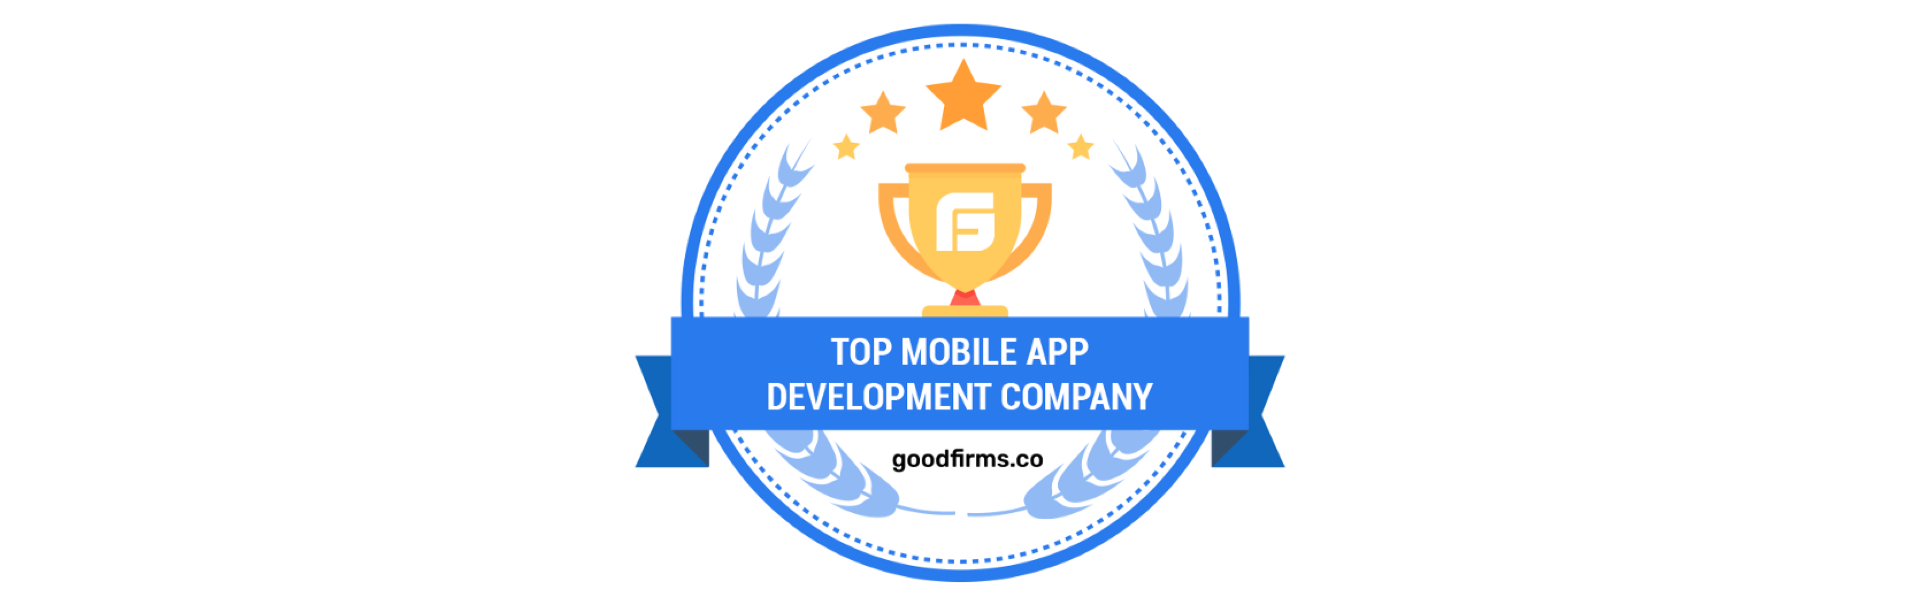 top app mobile app development by goodfirms